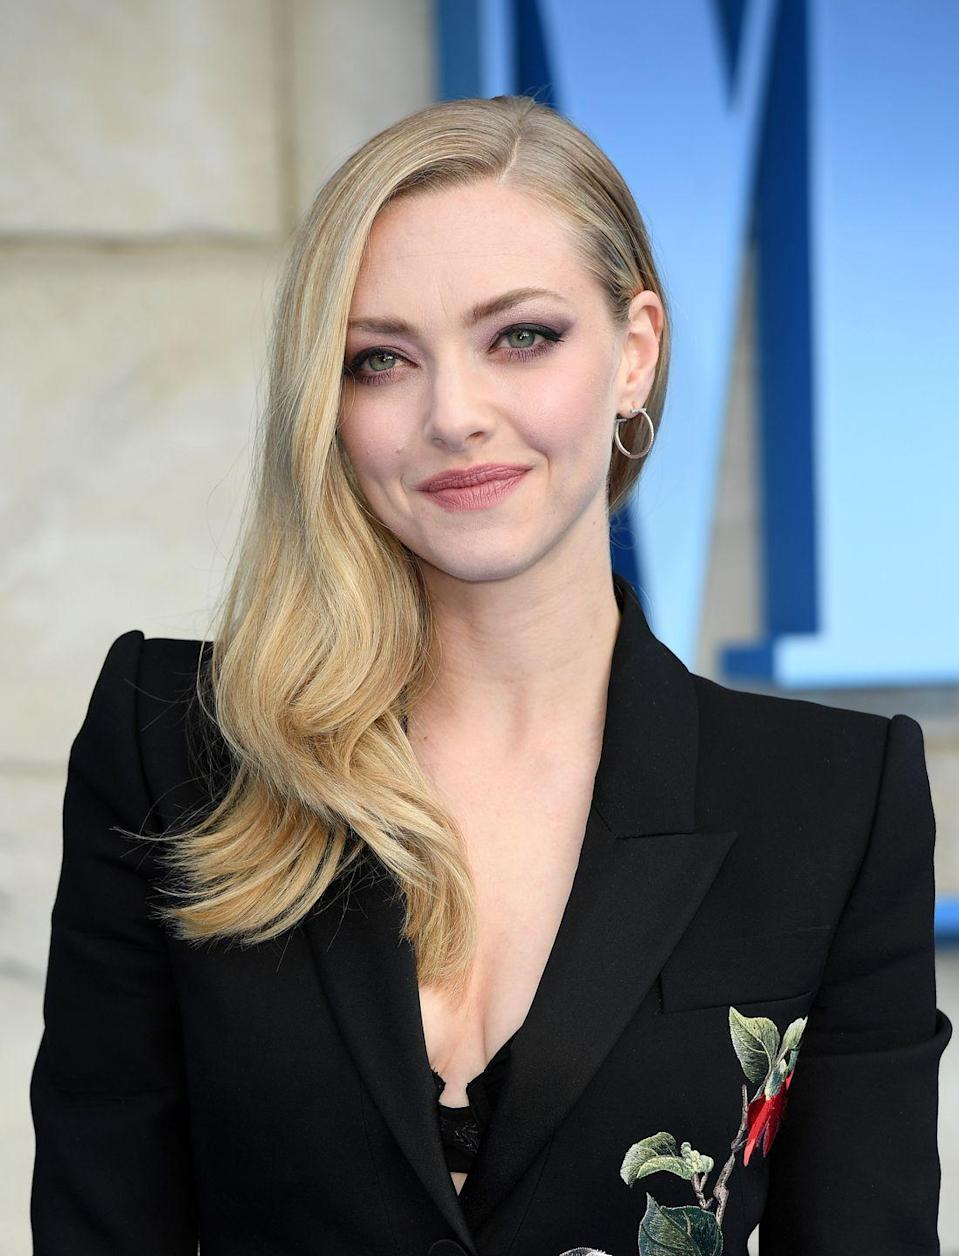 "<p>In a <a href=""https://www.allure.com/story/amanda-seyfried-ocd-mental-health-stigma"" rel=""nofollow noopener"" target=""_blank"" data-ylk=""slk:2016 interview with"" class=""link rapid-noclick-resp"">2016 interview with </a><em><a href=""https://www.allure.com/story/amanda-seyfried-ocd-mental-health-stigma"" rel=""nofollow noopener"" target=""_blank"" data-ylk=""slk:Allure"" class=""link rapid-noclick-resp"">Allure</a></em>, Amanda Seyfried revealed that she is on Lexapro for <a href=""https://www.prevention.com/health/mental-health/g20135704/ocd-symptoms/"" rel=""nofollow noopener"" target=""_blank"" data-ylk=""slk:OCD"" class=""link rapid-noclick-resp"">OCD</a>, and that she'll ""never get off it"" since she's been taking the anxiety medication since she was 19. ""You don't see the mental illness: It's not a mass; it's not a cyst. But it's there. Why do you need to prove it? If you can treat it, you treat it,"" she said. ""I had pretty bad health anxiety that came from the OCD and thought I had a <a href=""https://www.prevention.com/health/a20495311/7-warning-signs-of-a-brain-tumor-you-should-know/"" rel=""nofollow noopener"" target=""_blank"" data-ylk=""slk:tumor in my brain"" class=""link rapid-noclick-resp"">tumor in my brain</a>. I had an MRI, and the neurologist referred me to a psychiatrist. As I get older, the compulsive thoughts and fears have diminished a lot. Knowing that a lot of my fears are not reality-based really helps.""</p>"